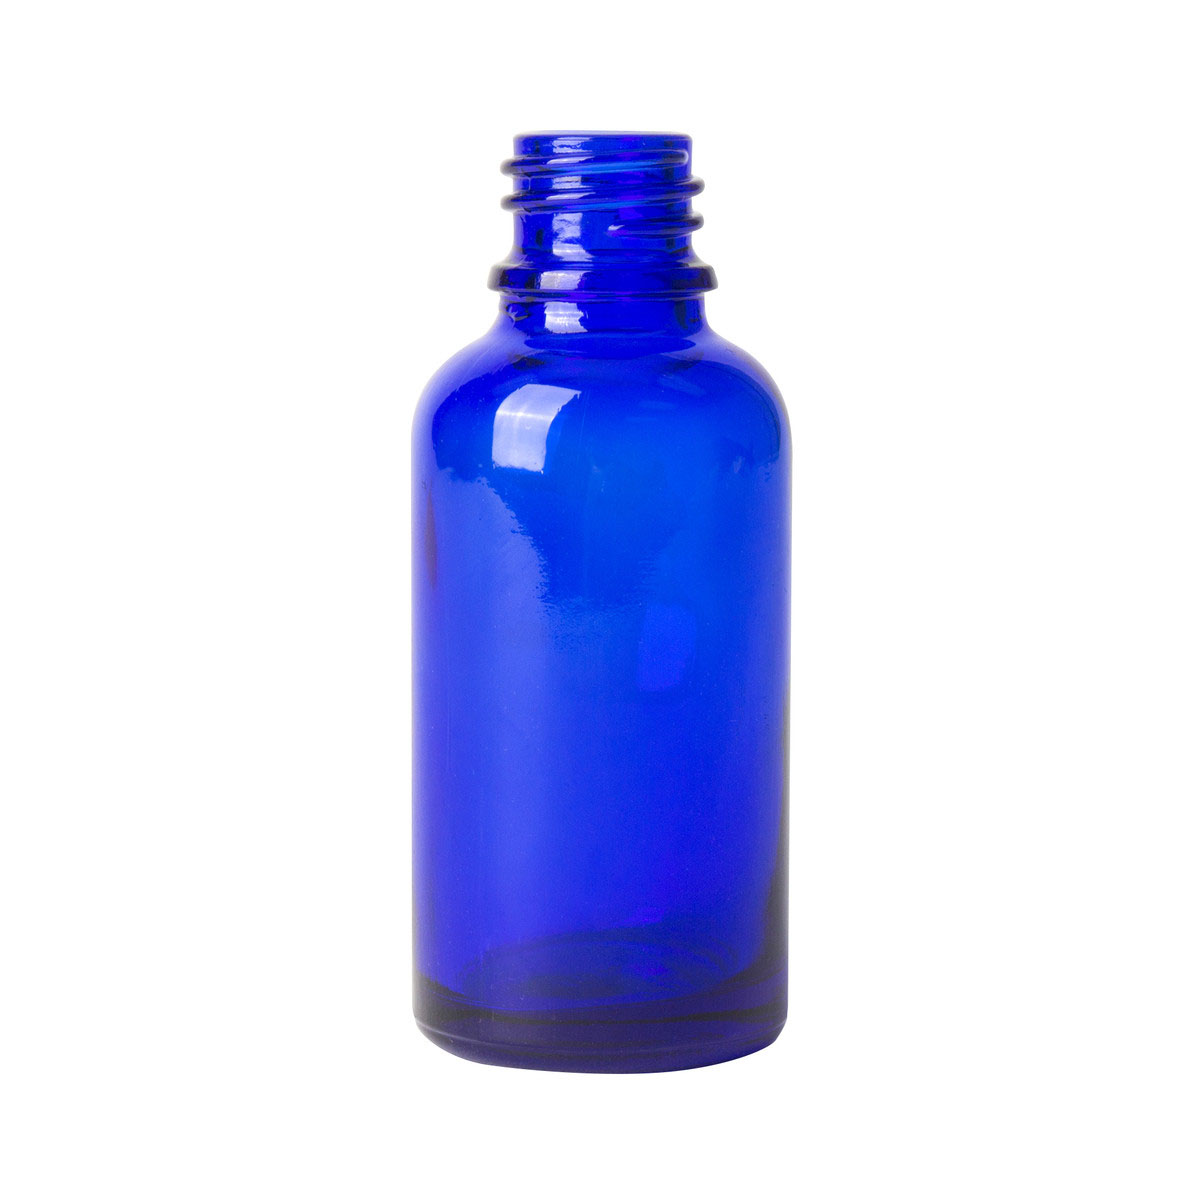 15ml Glass Dropper Bottle In Cobalt Blue (468 Qty.)